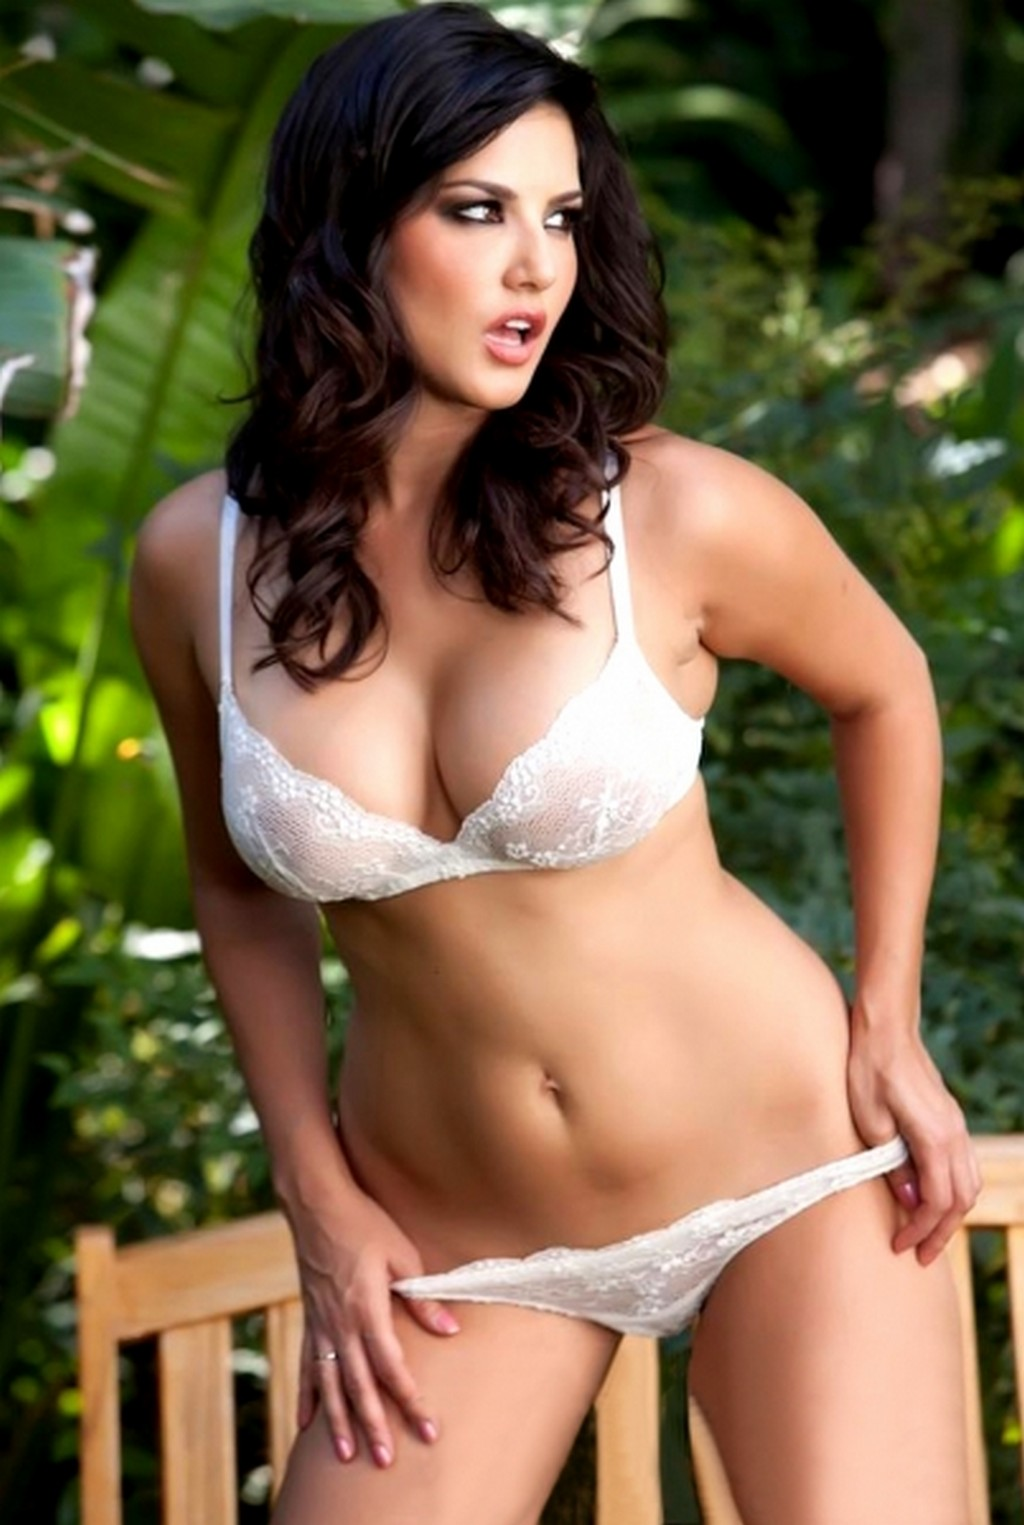 Remarkable, Sunny leone xxx nude with